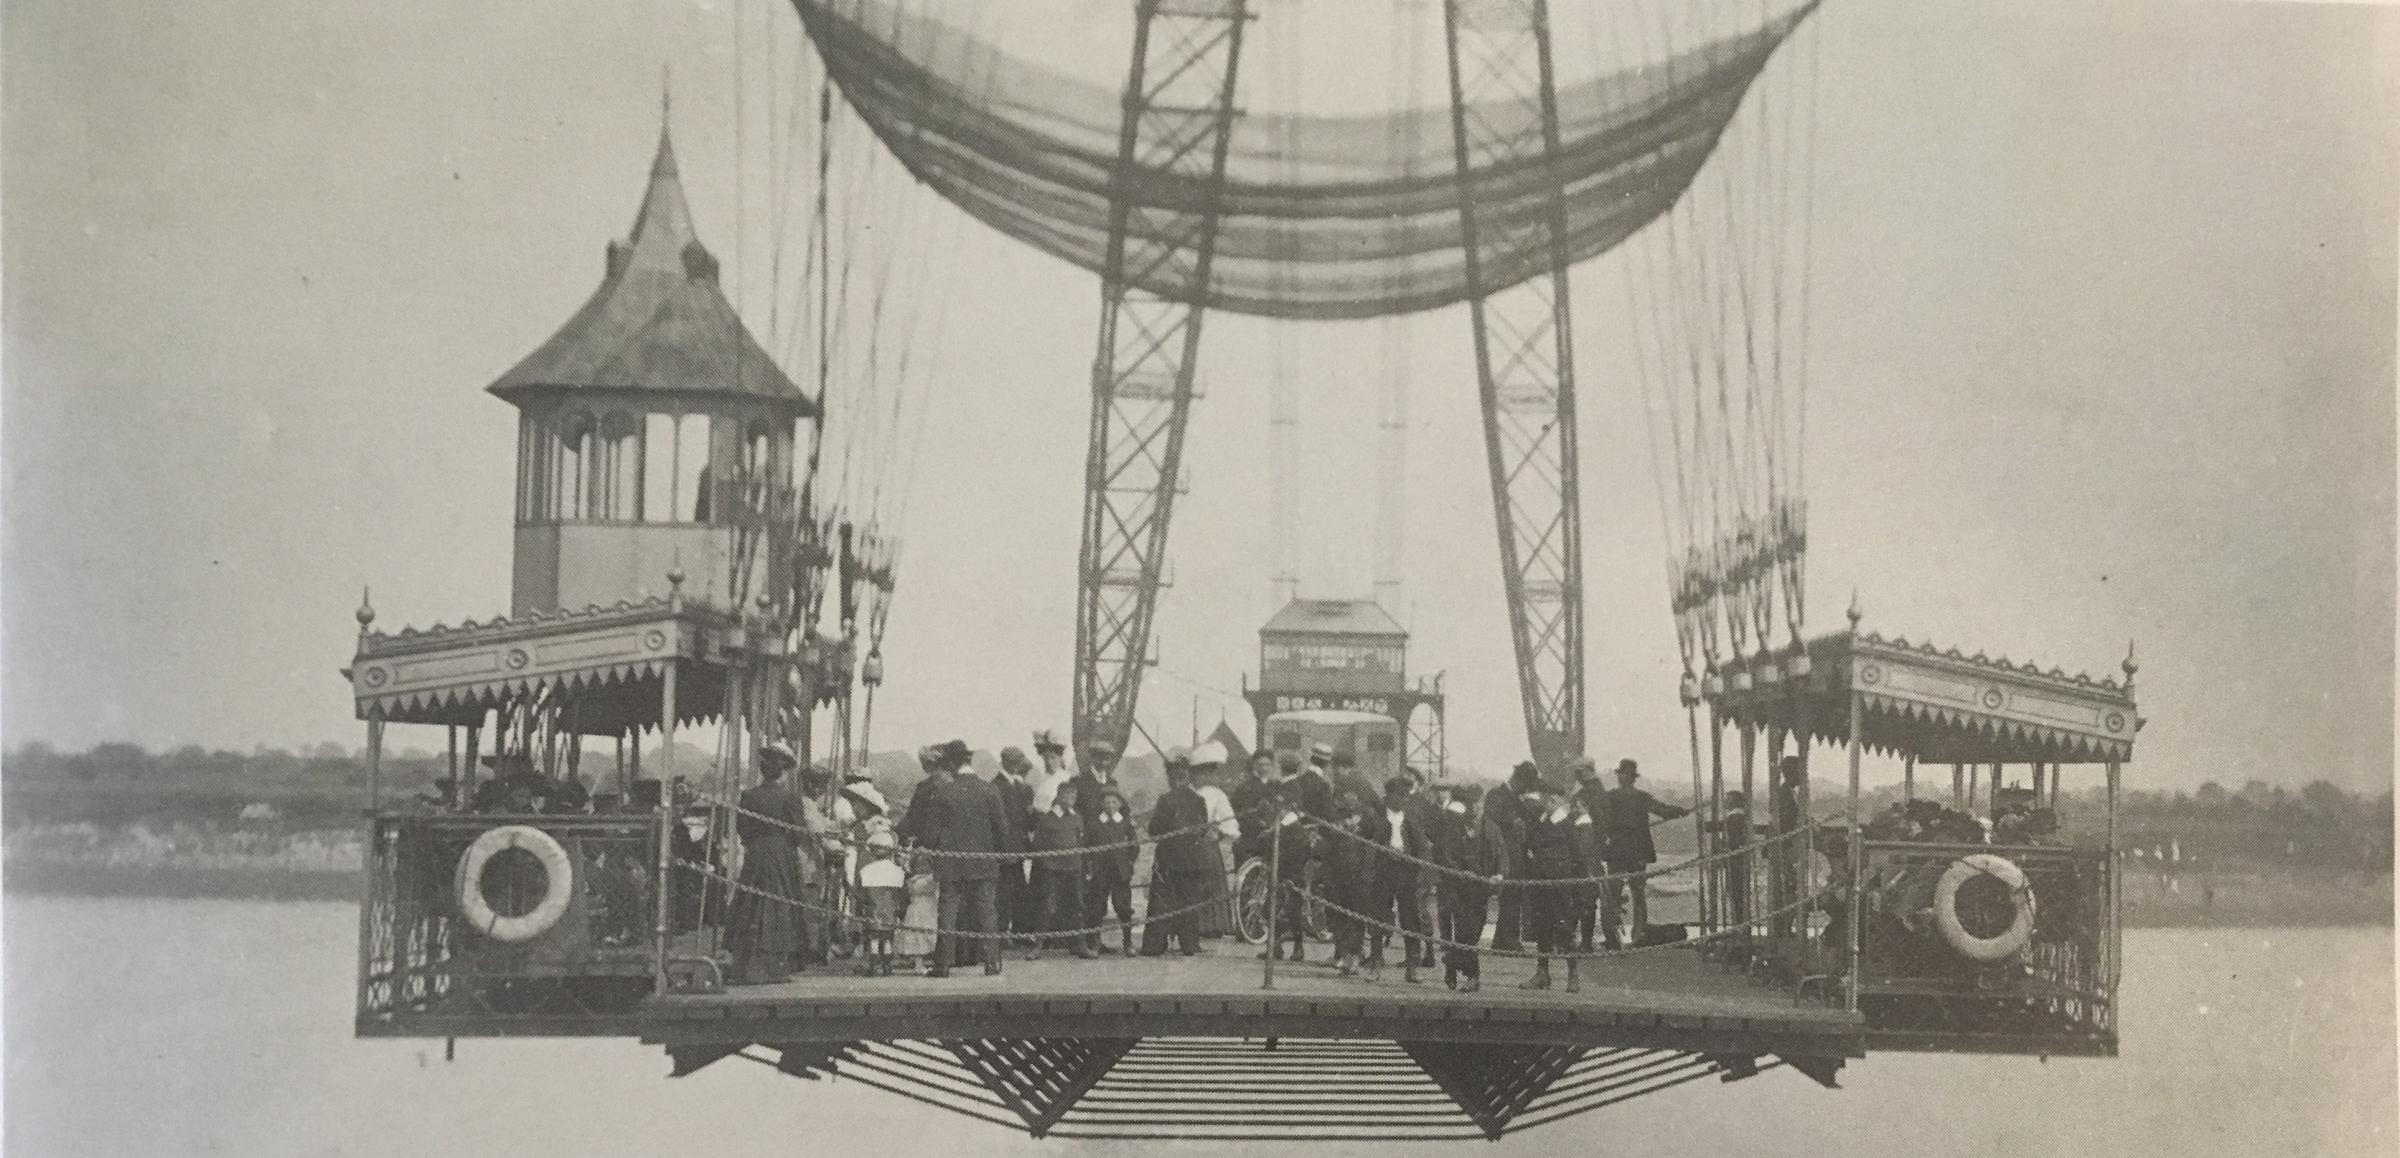 NOW AND THEN: The Newport Transporter Bridge